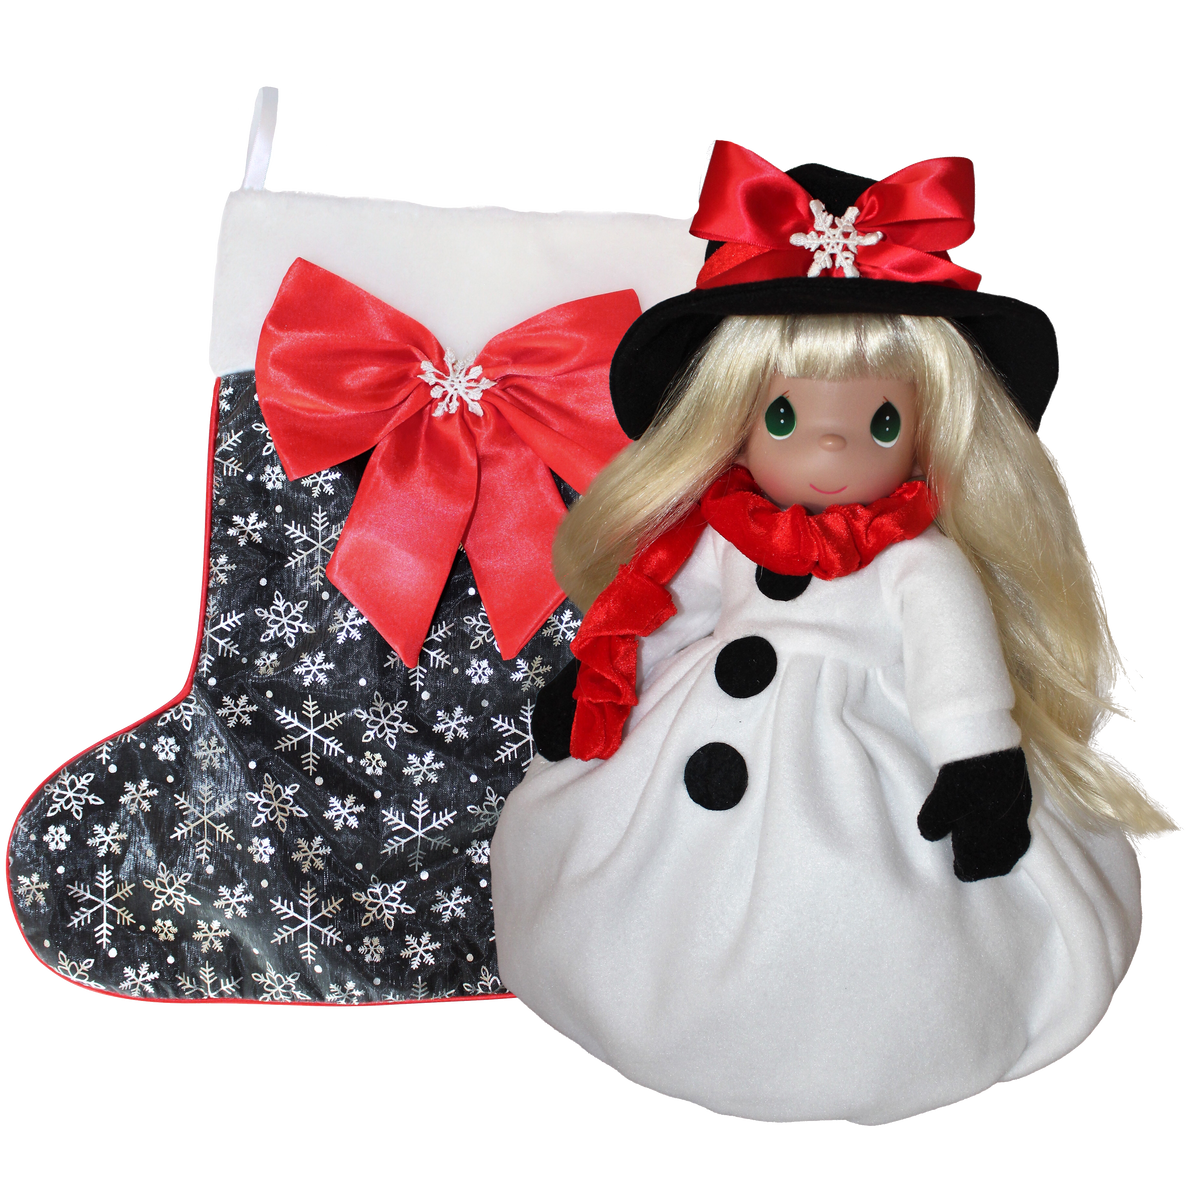 2020 Precious Moments Annual Stocking Doll